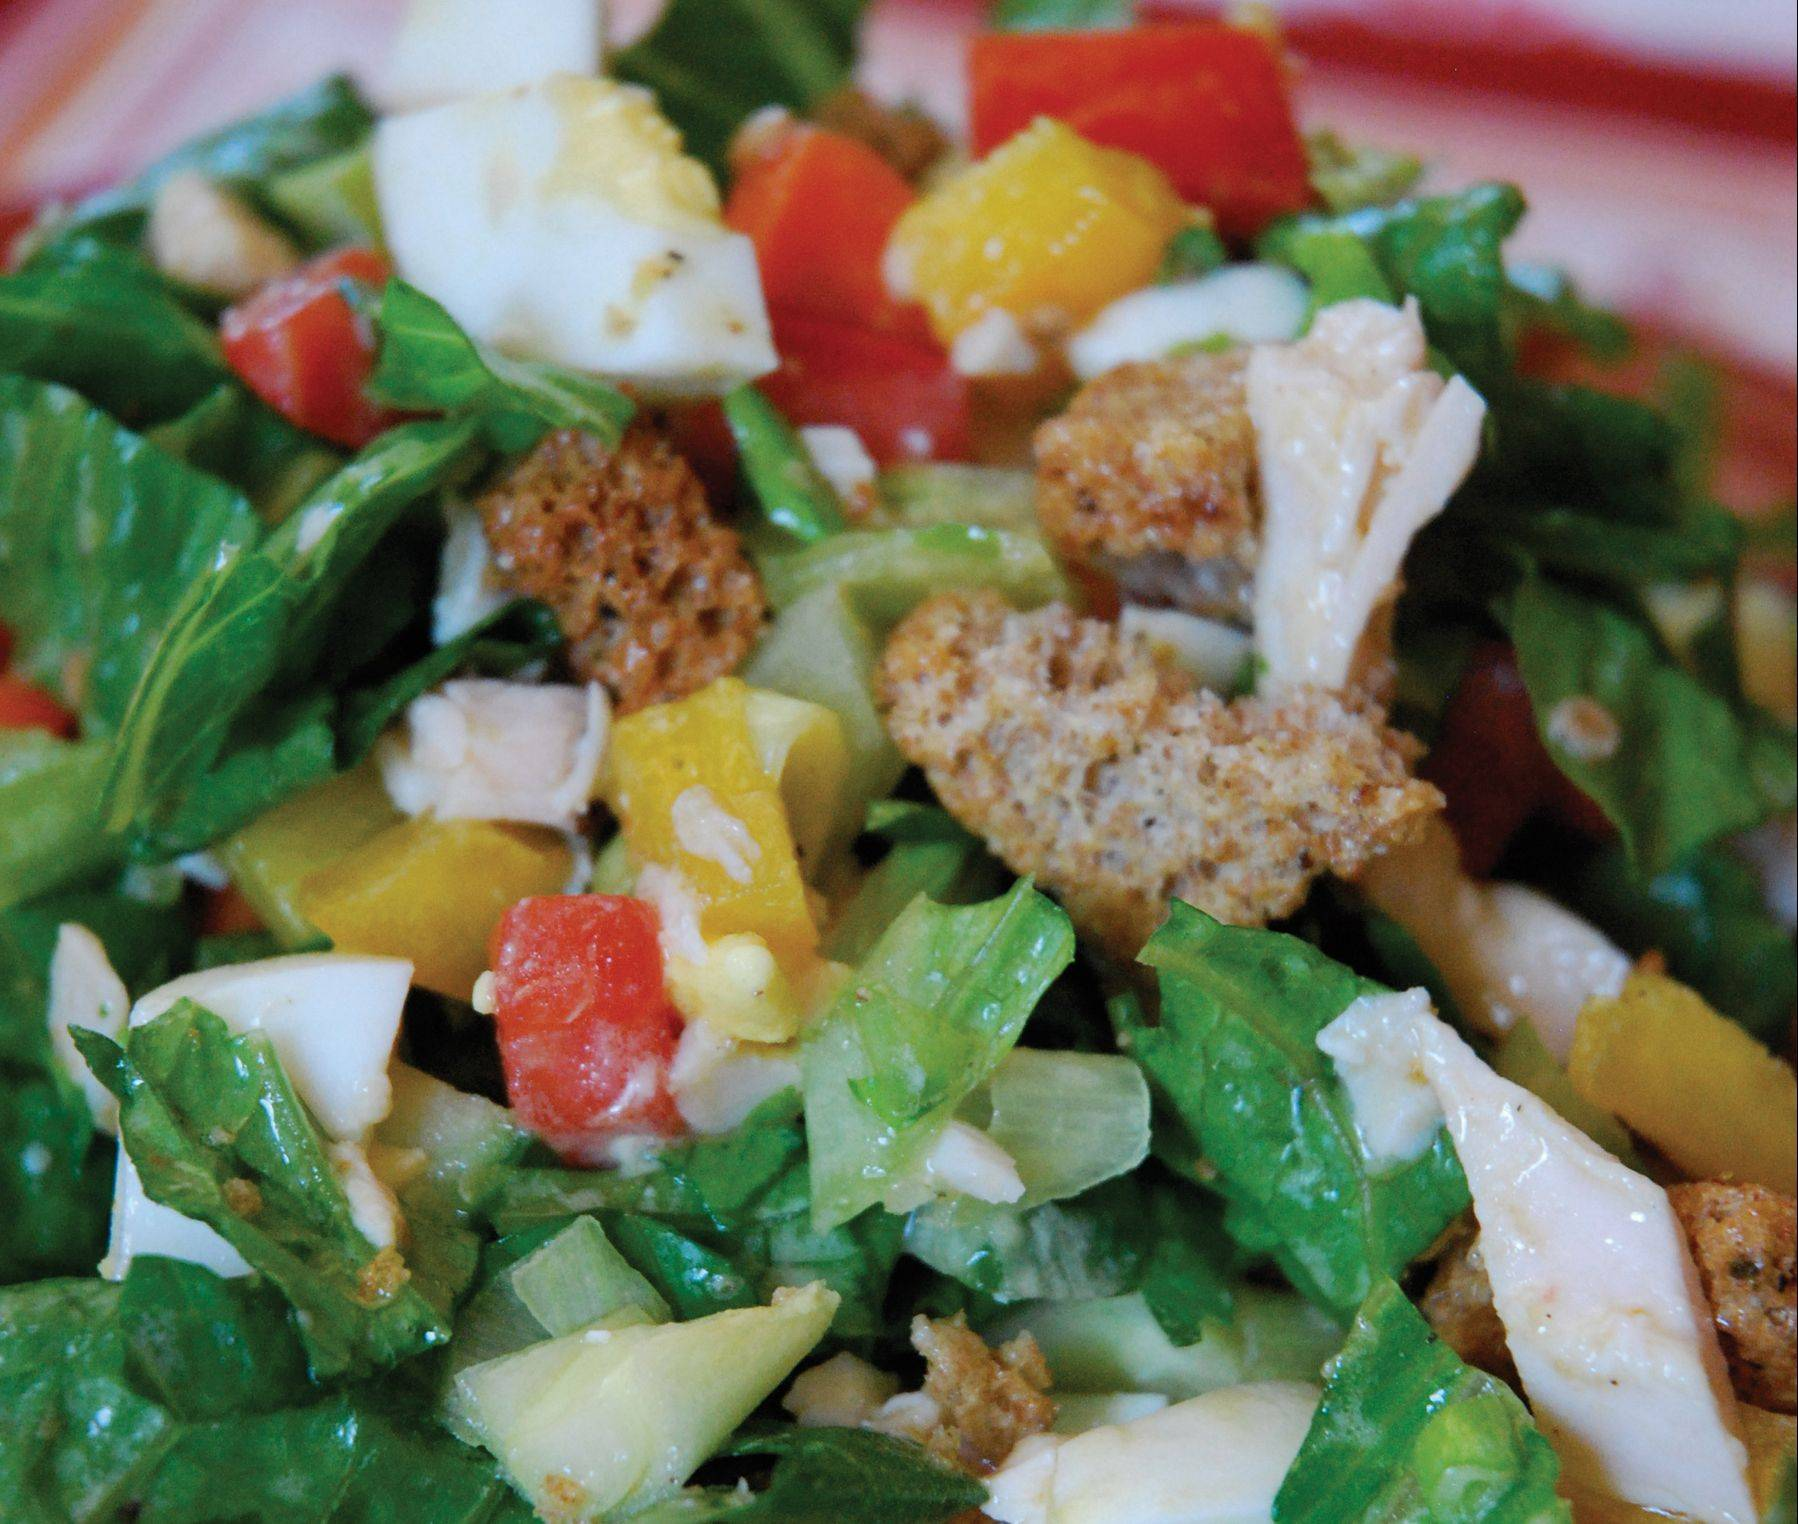 It doesn't matter which comes first, the chicken or the egg, when gobbling up this lean protein salad.